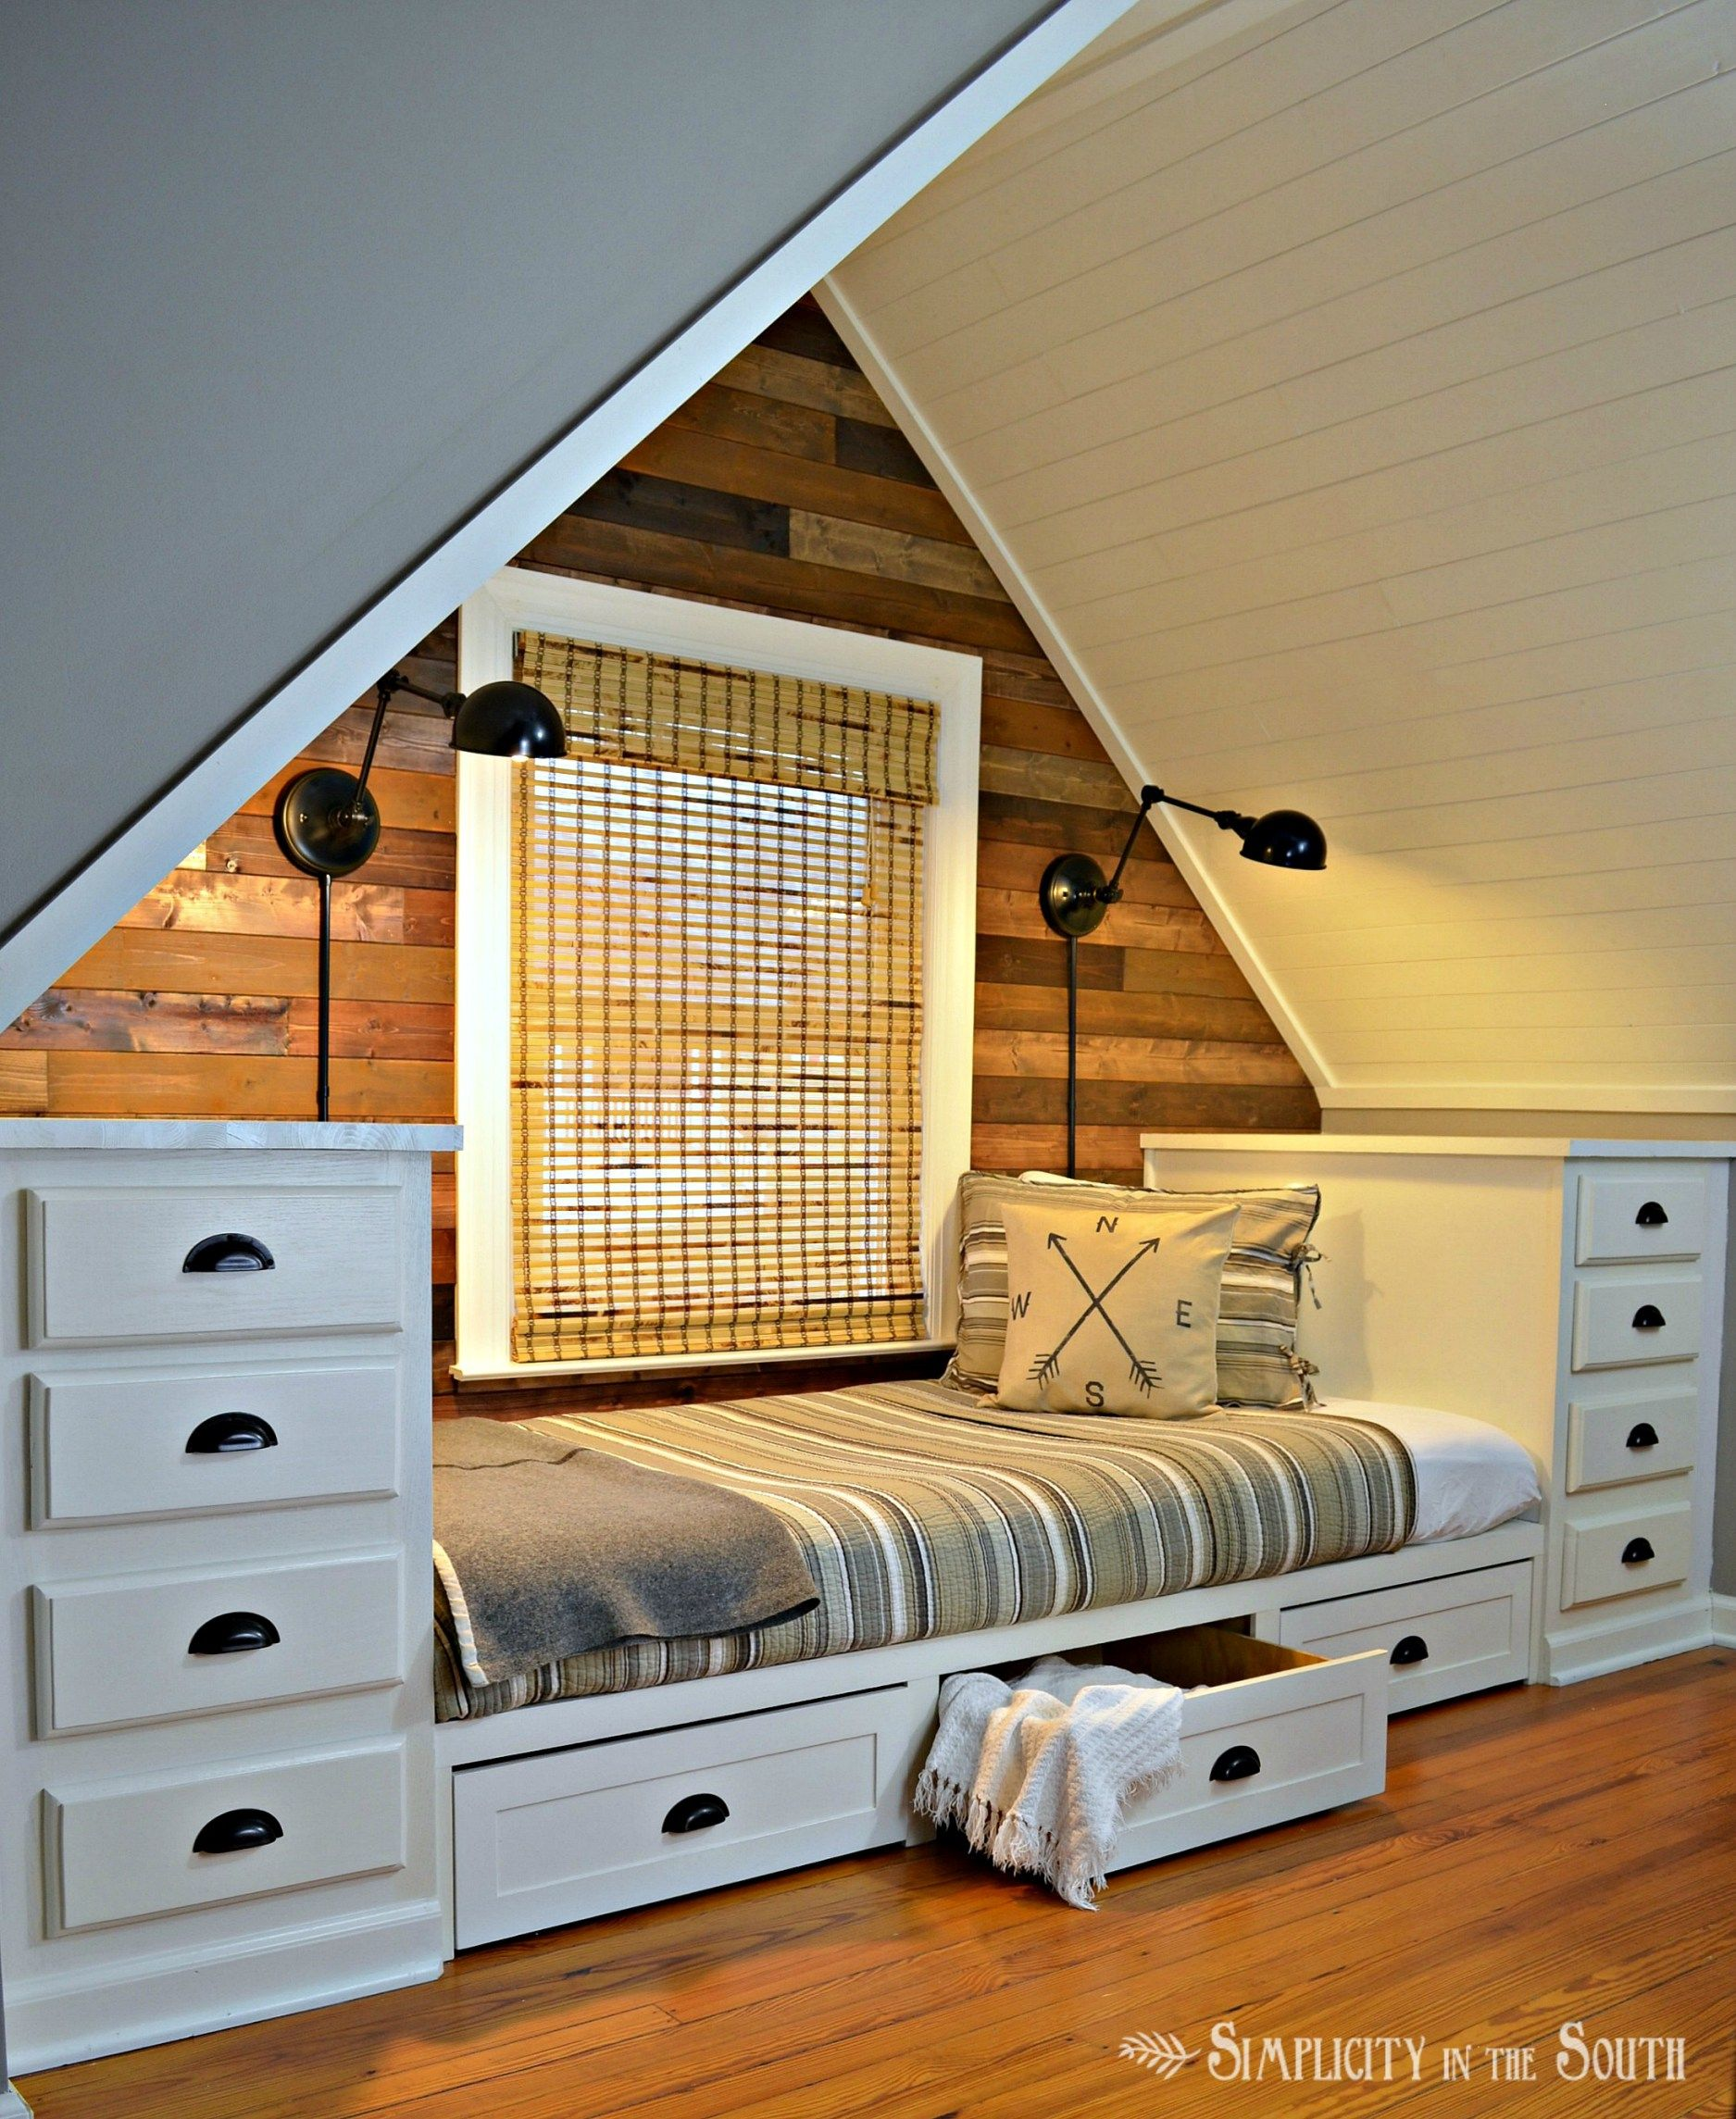 build this cozy built in bed with stock kitchen cabinet  add trundle drawers for more build this cozy built in bed with stock kitchen cabinet  add      rh   pinterest com